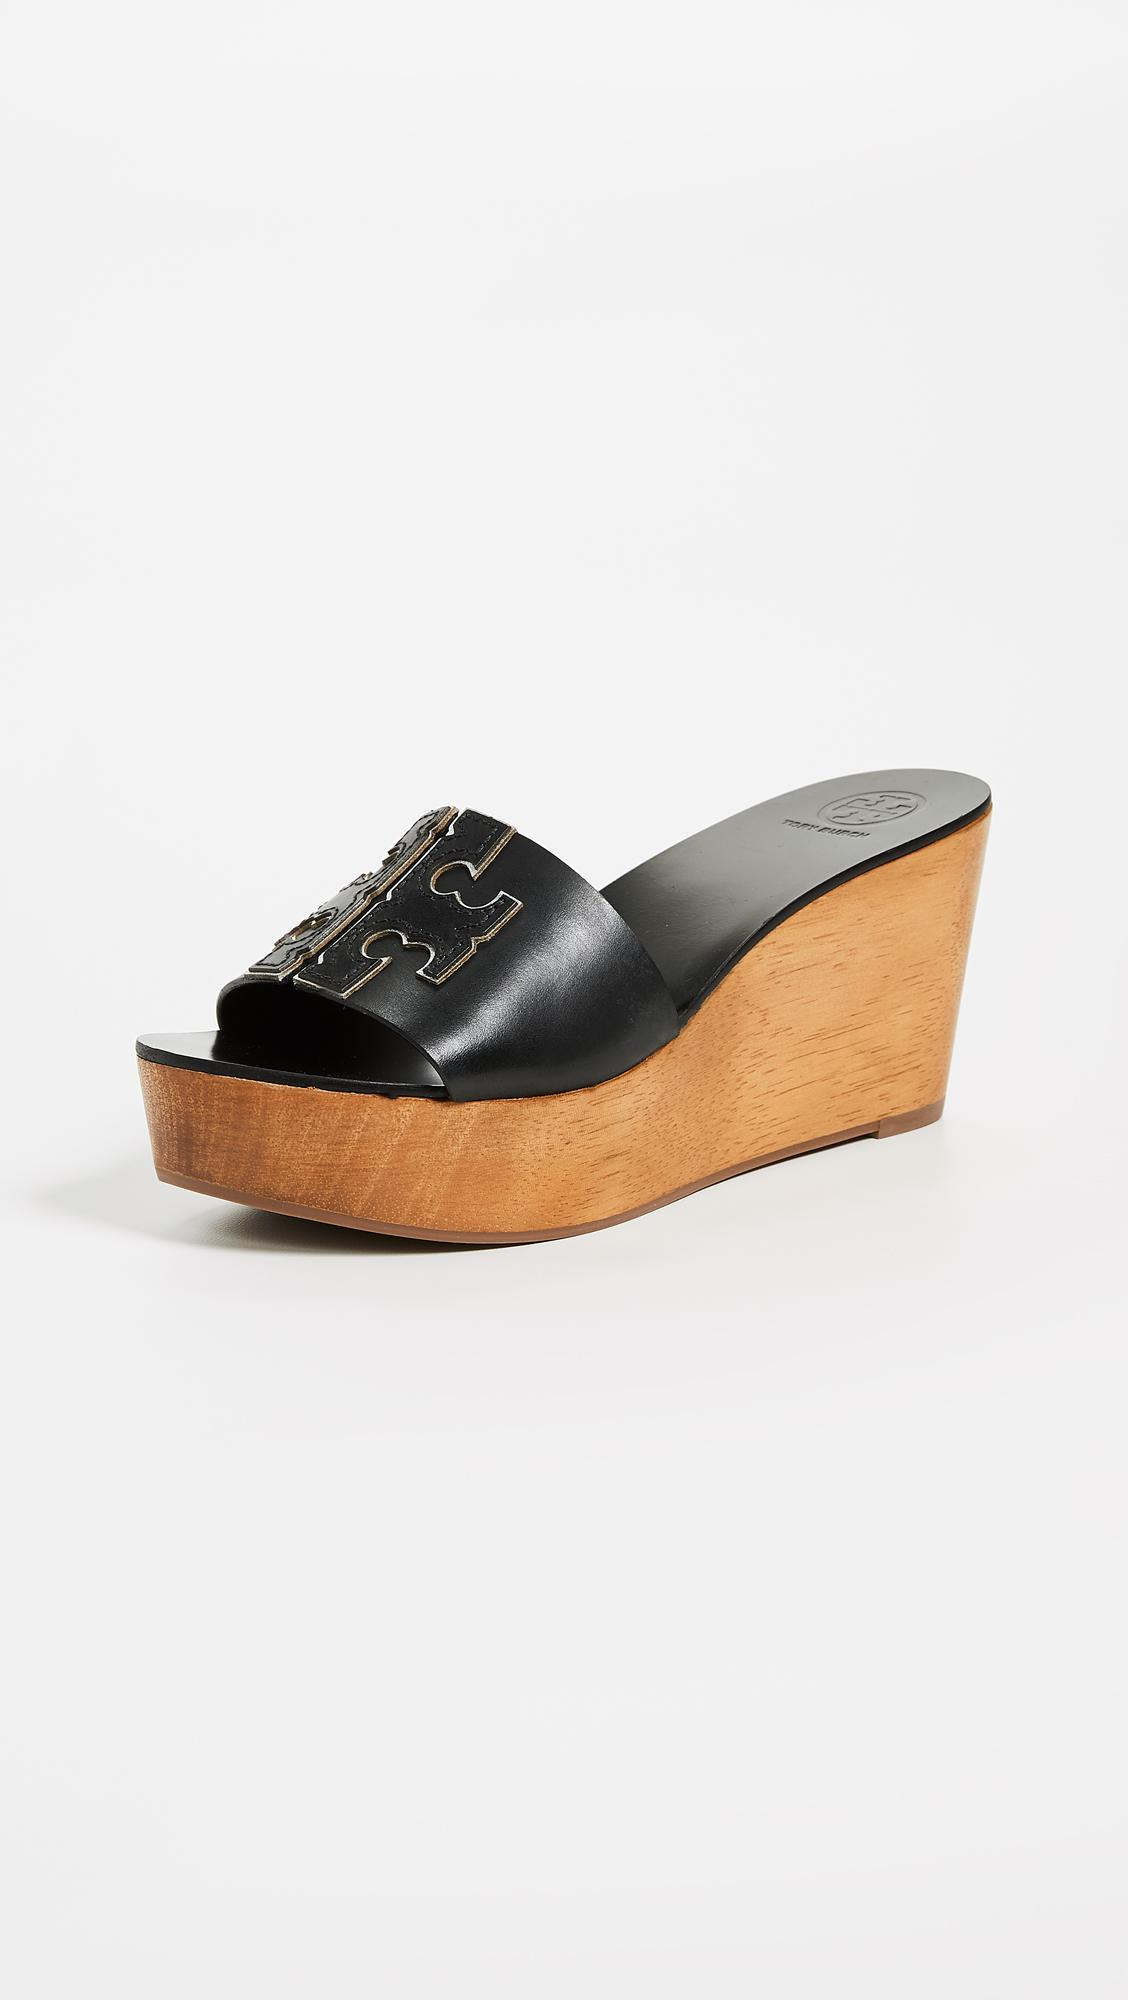 41145c10d85cb Tory Burch. Women s Black Ines 80mm Wedge Slides. £190 From Shopbop